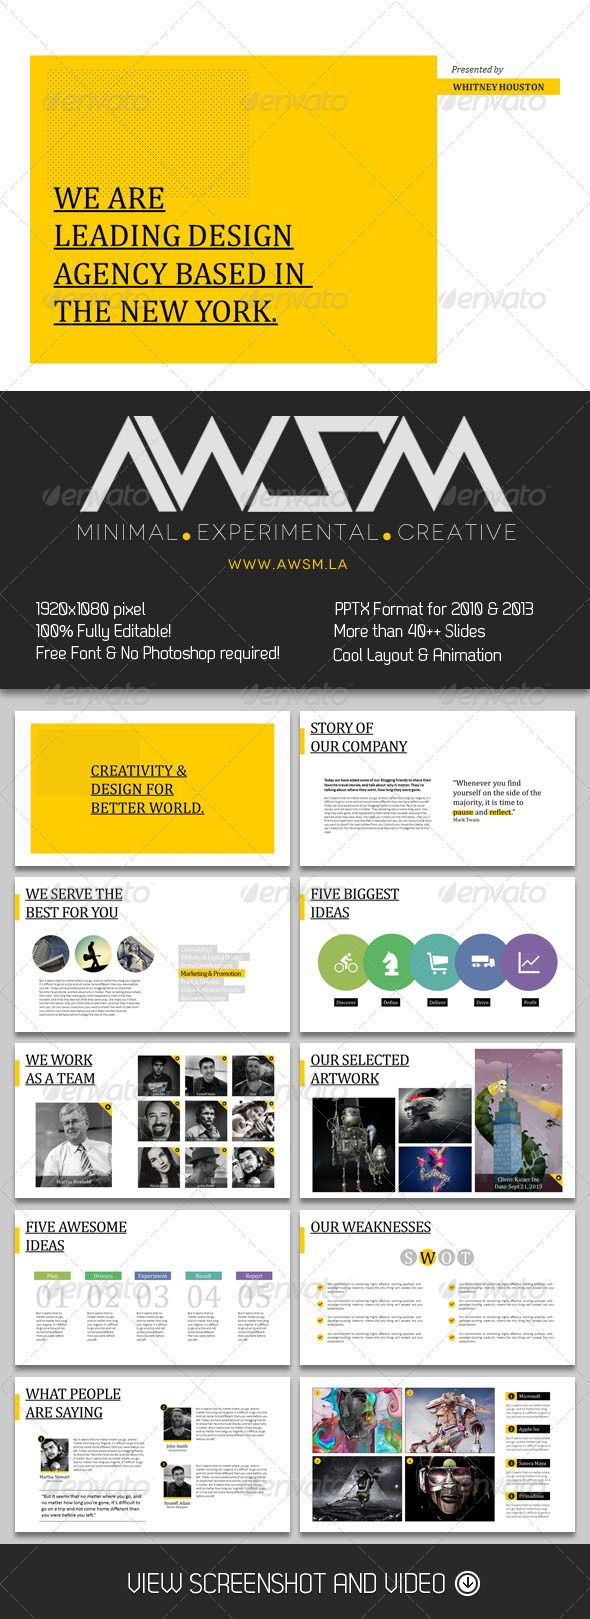 20 best ppt images on pinterest ppt design ppt template and presentation templates biz minimal powerpoint template design presentation toneelgroepblik Images